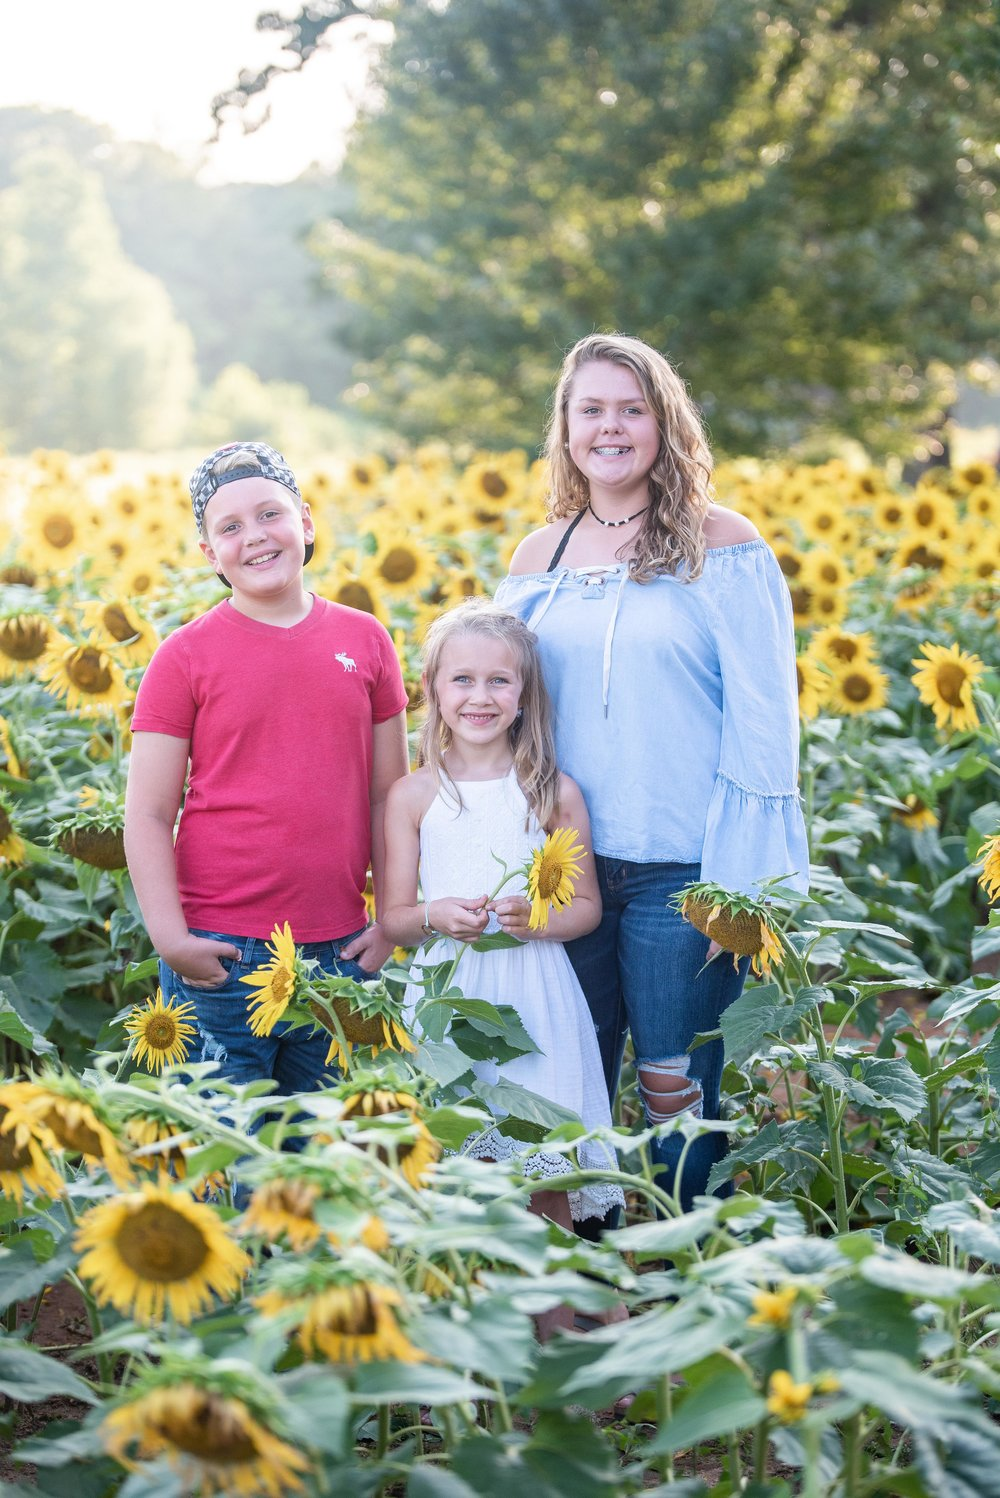 Dogwood Farm - Sunflower Field Photography Session - Sunflower Family Portraits - Fall Family Portraits - Summer Family Portraits - NC Photographer - NC Wedding Photographer - High Point Wedding Photographer -3.jpg